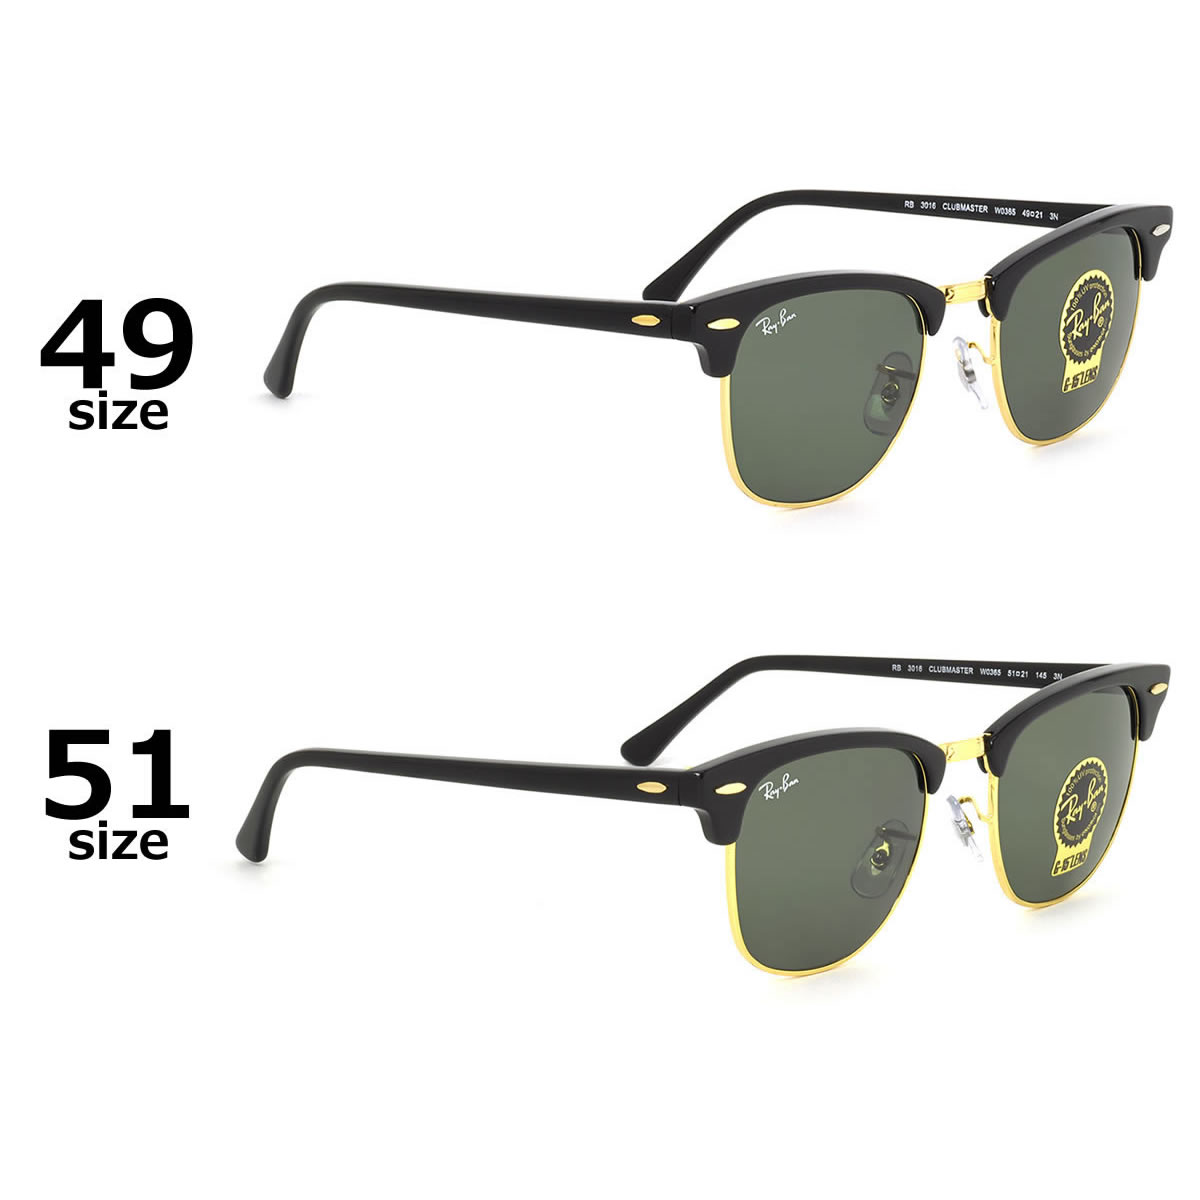 b1835e54cb5 Optical Shop Thats  Ray-Ban Sunglasses RB3016 W0365 multiple sizes  available CLUBMASTER GENUINE NEW rayban ray ban